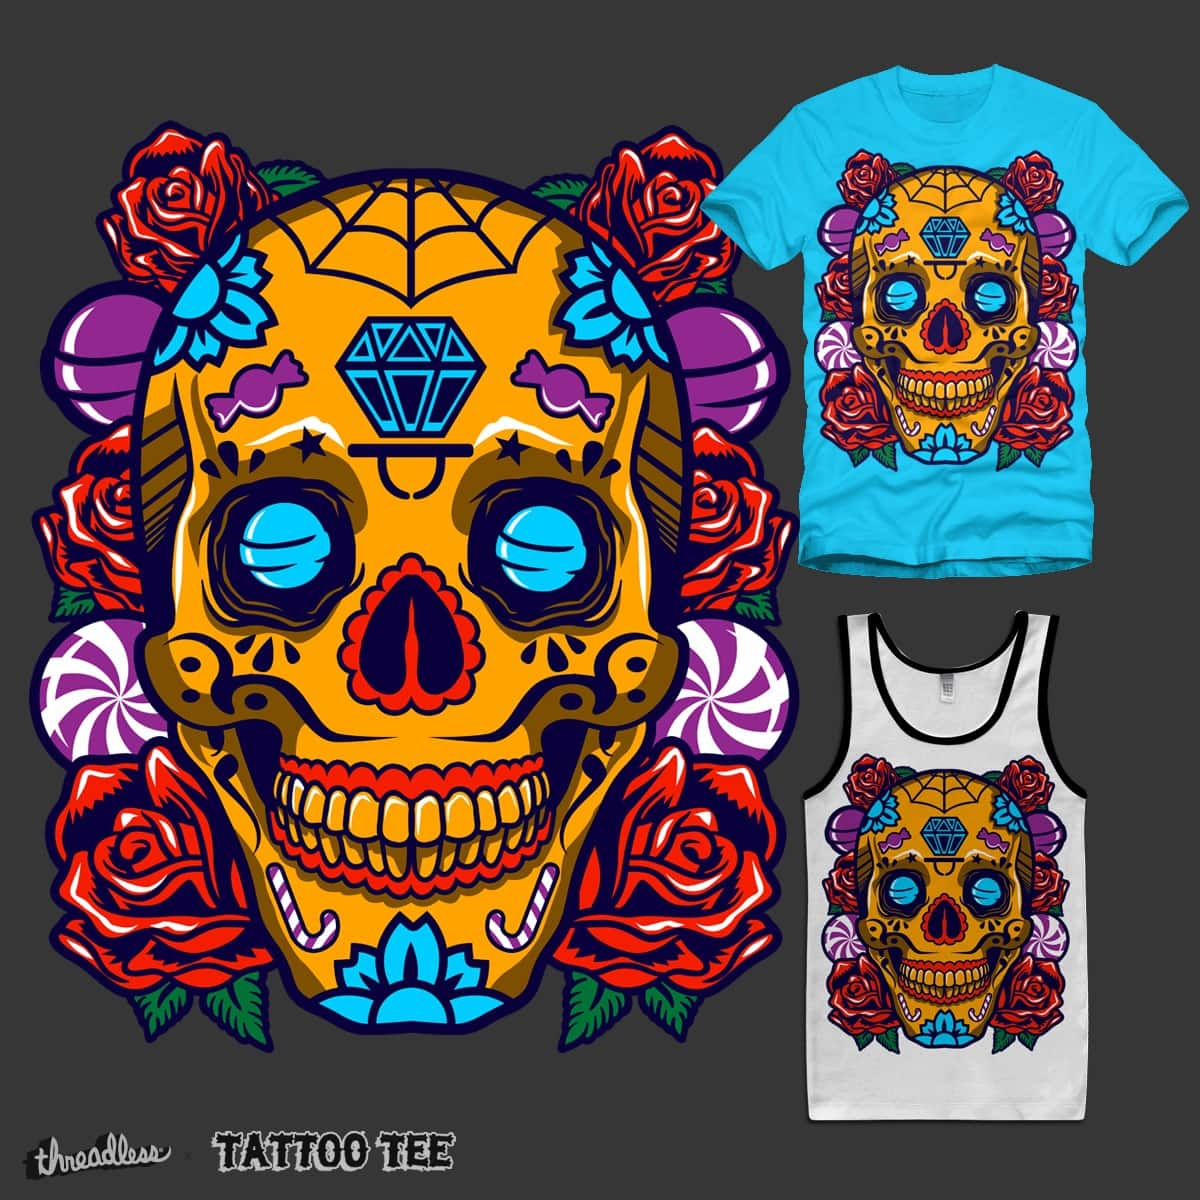 SkullCandy by lumad on Threadless